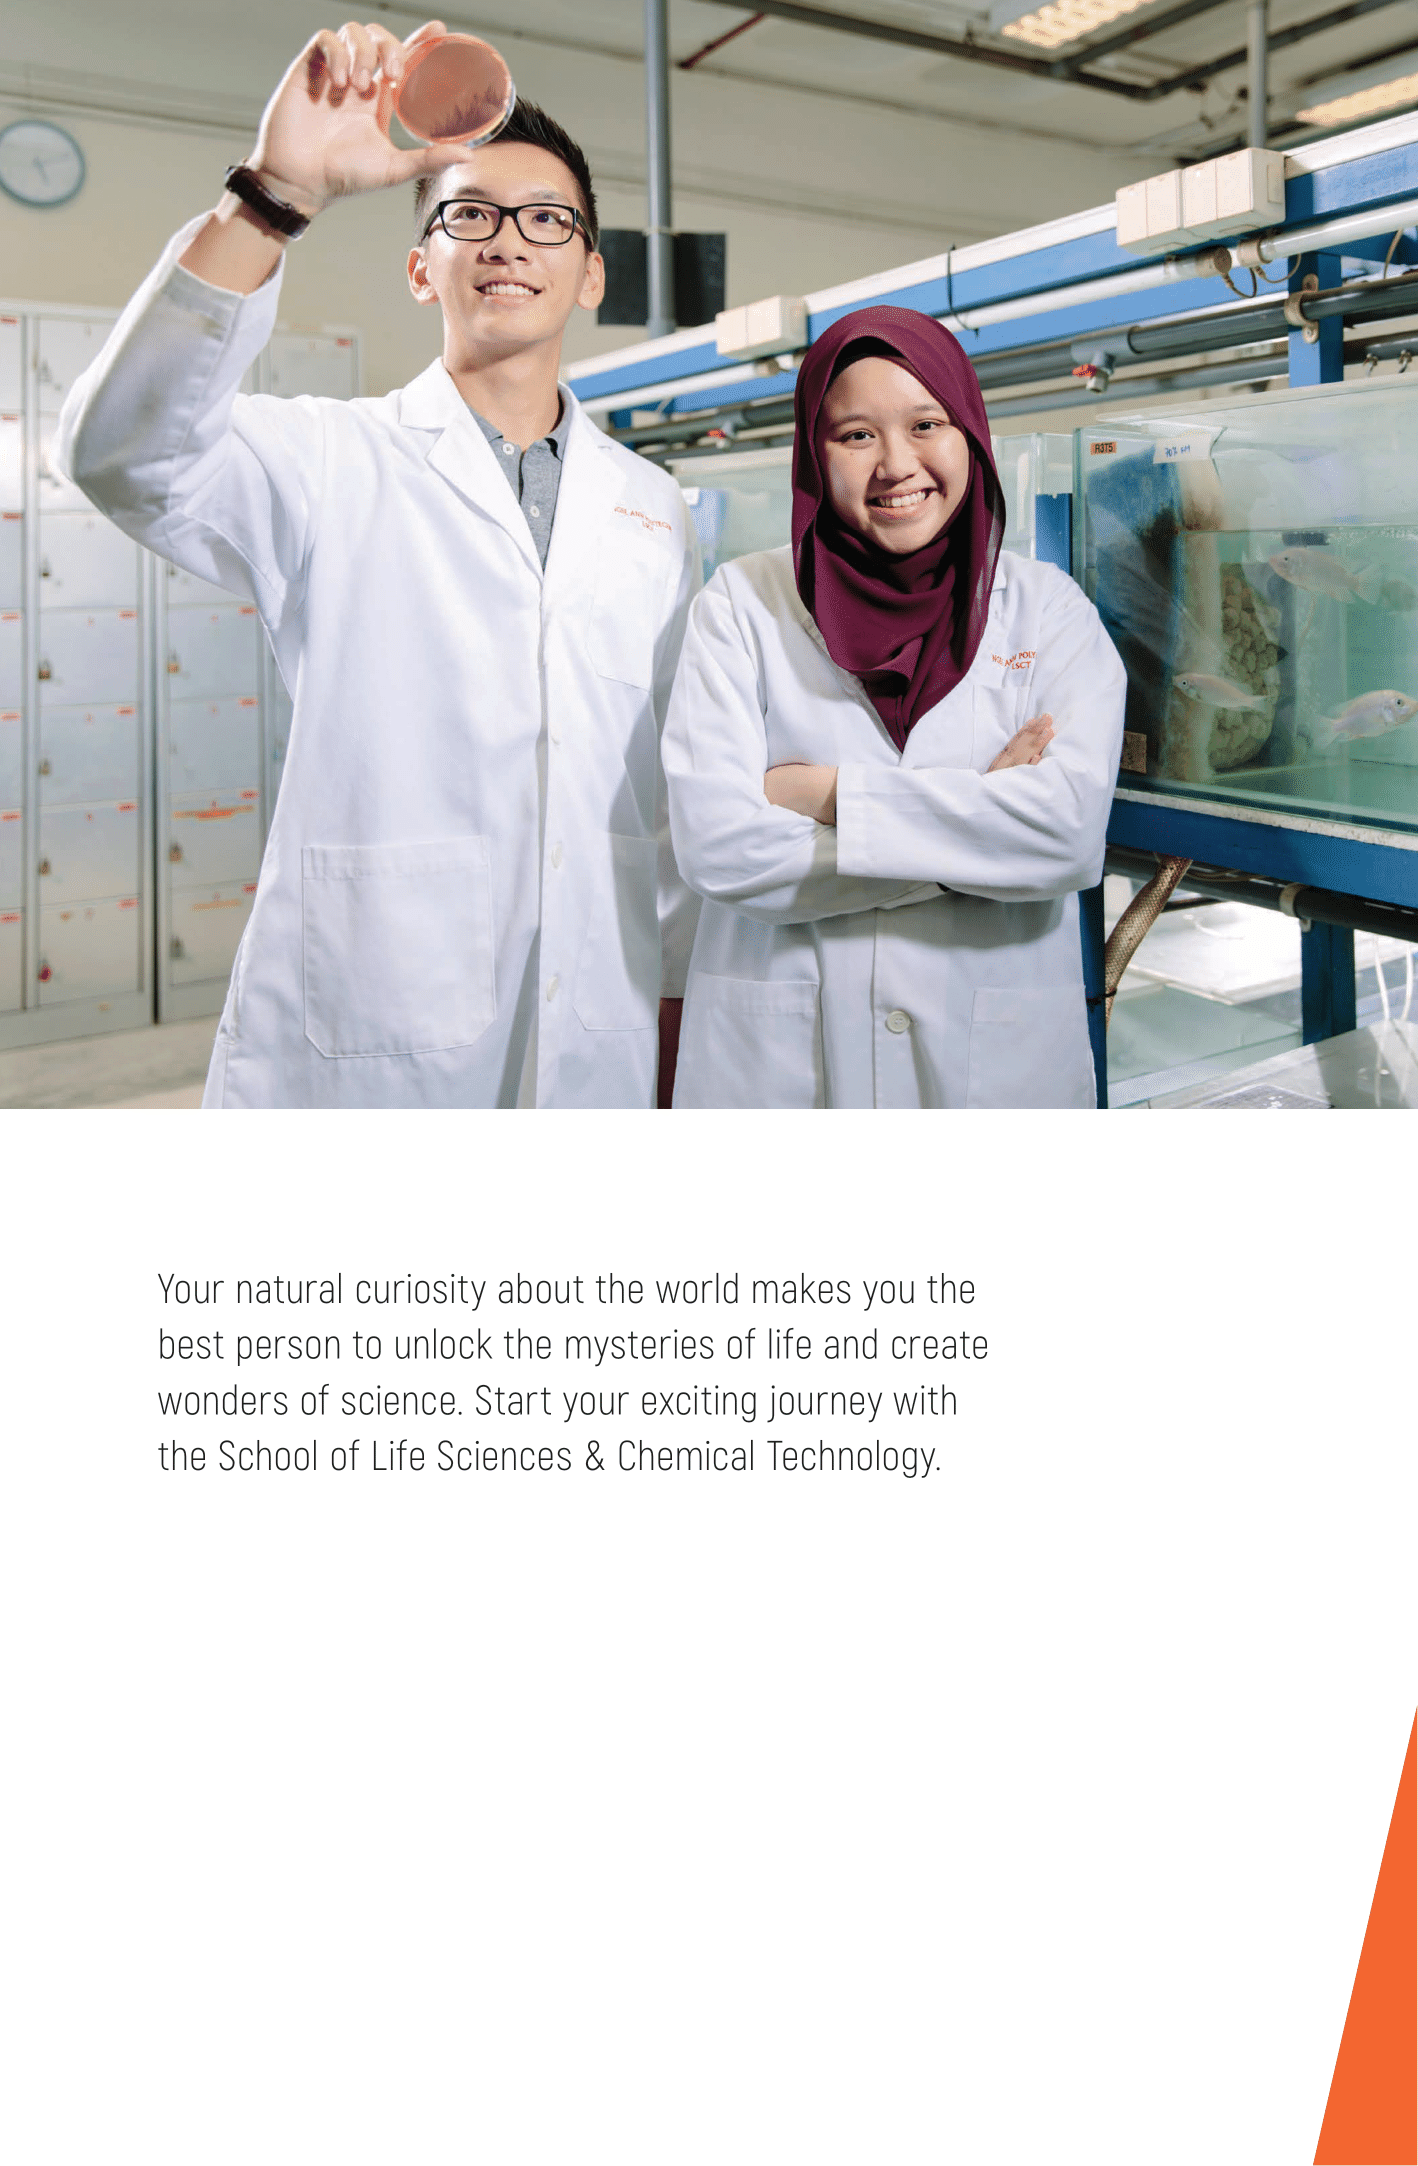 School of Life Sciences and Chemical Technology 2020-03